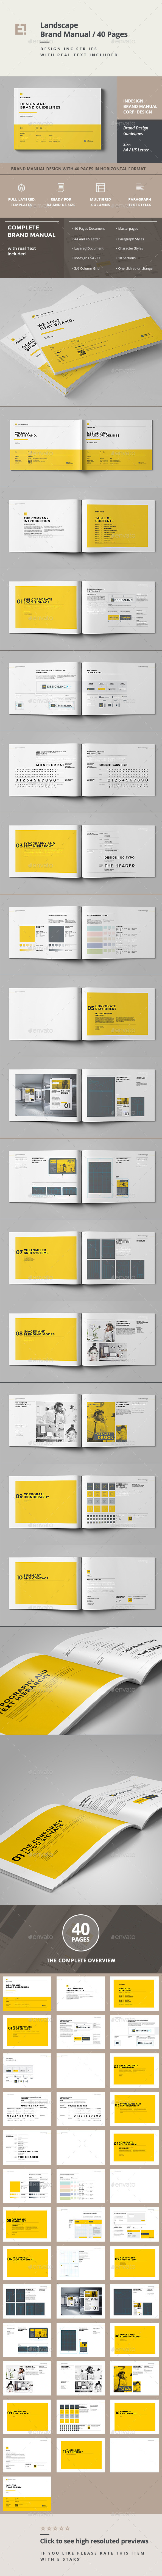 GraphicRiver Brand Manual 11805697